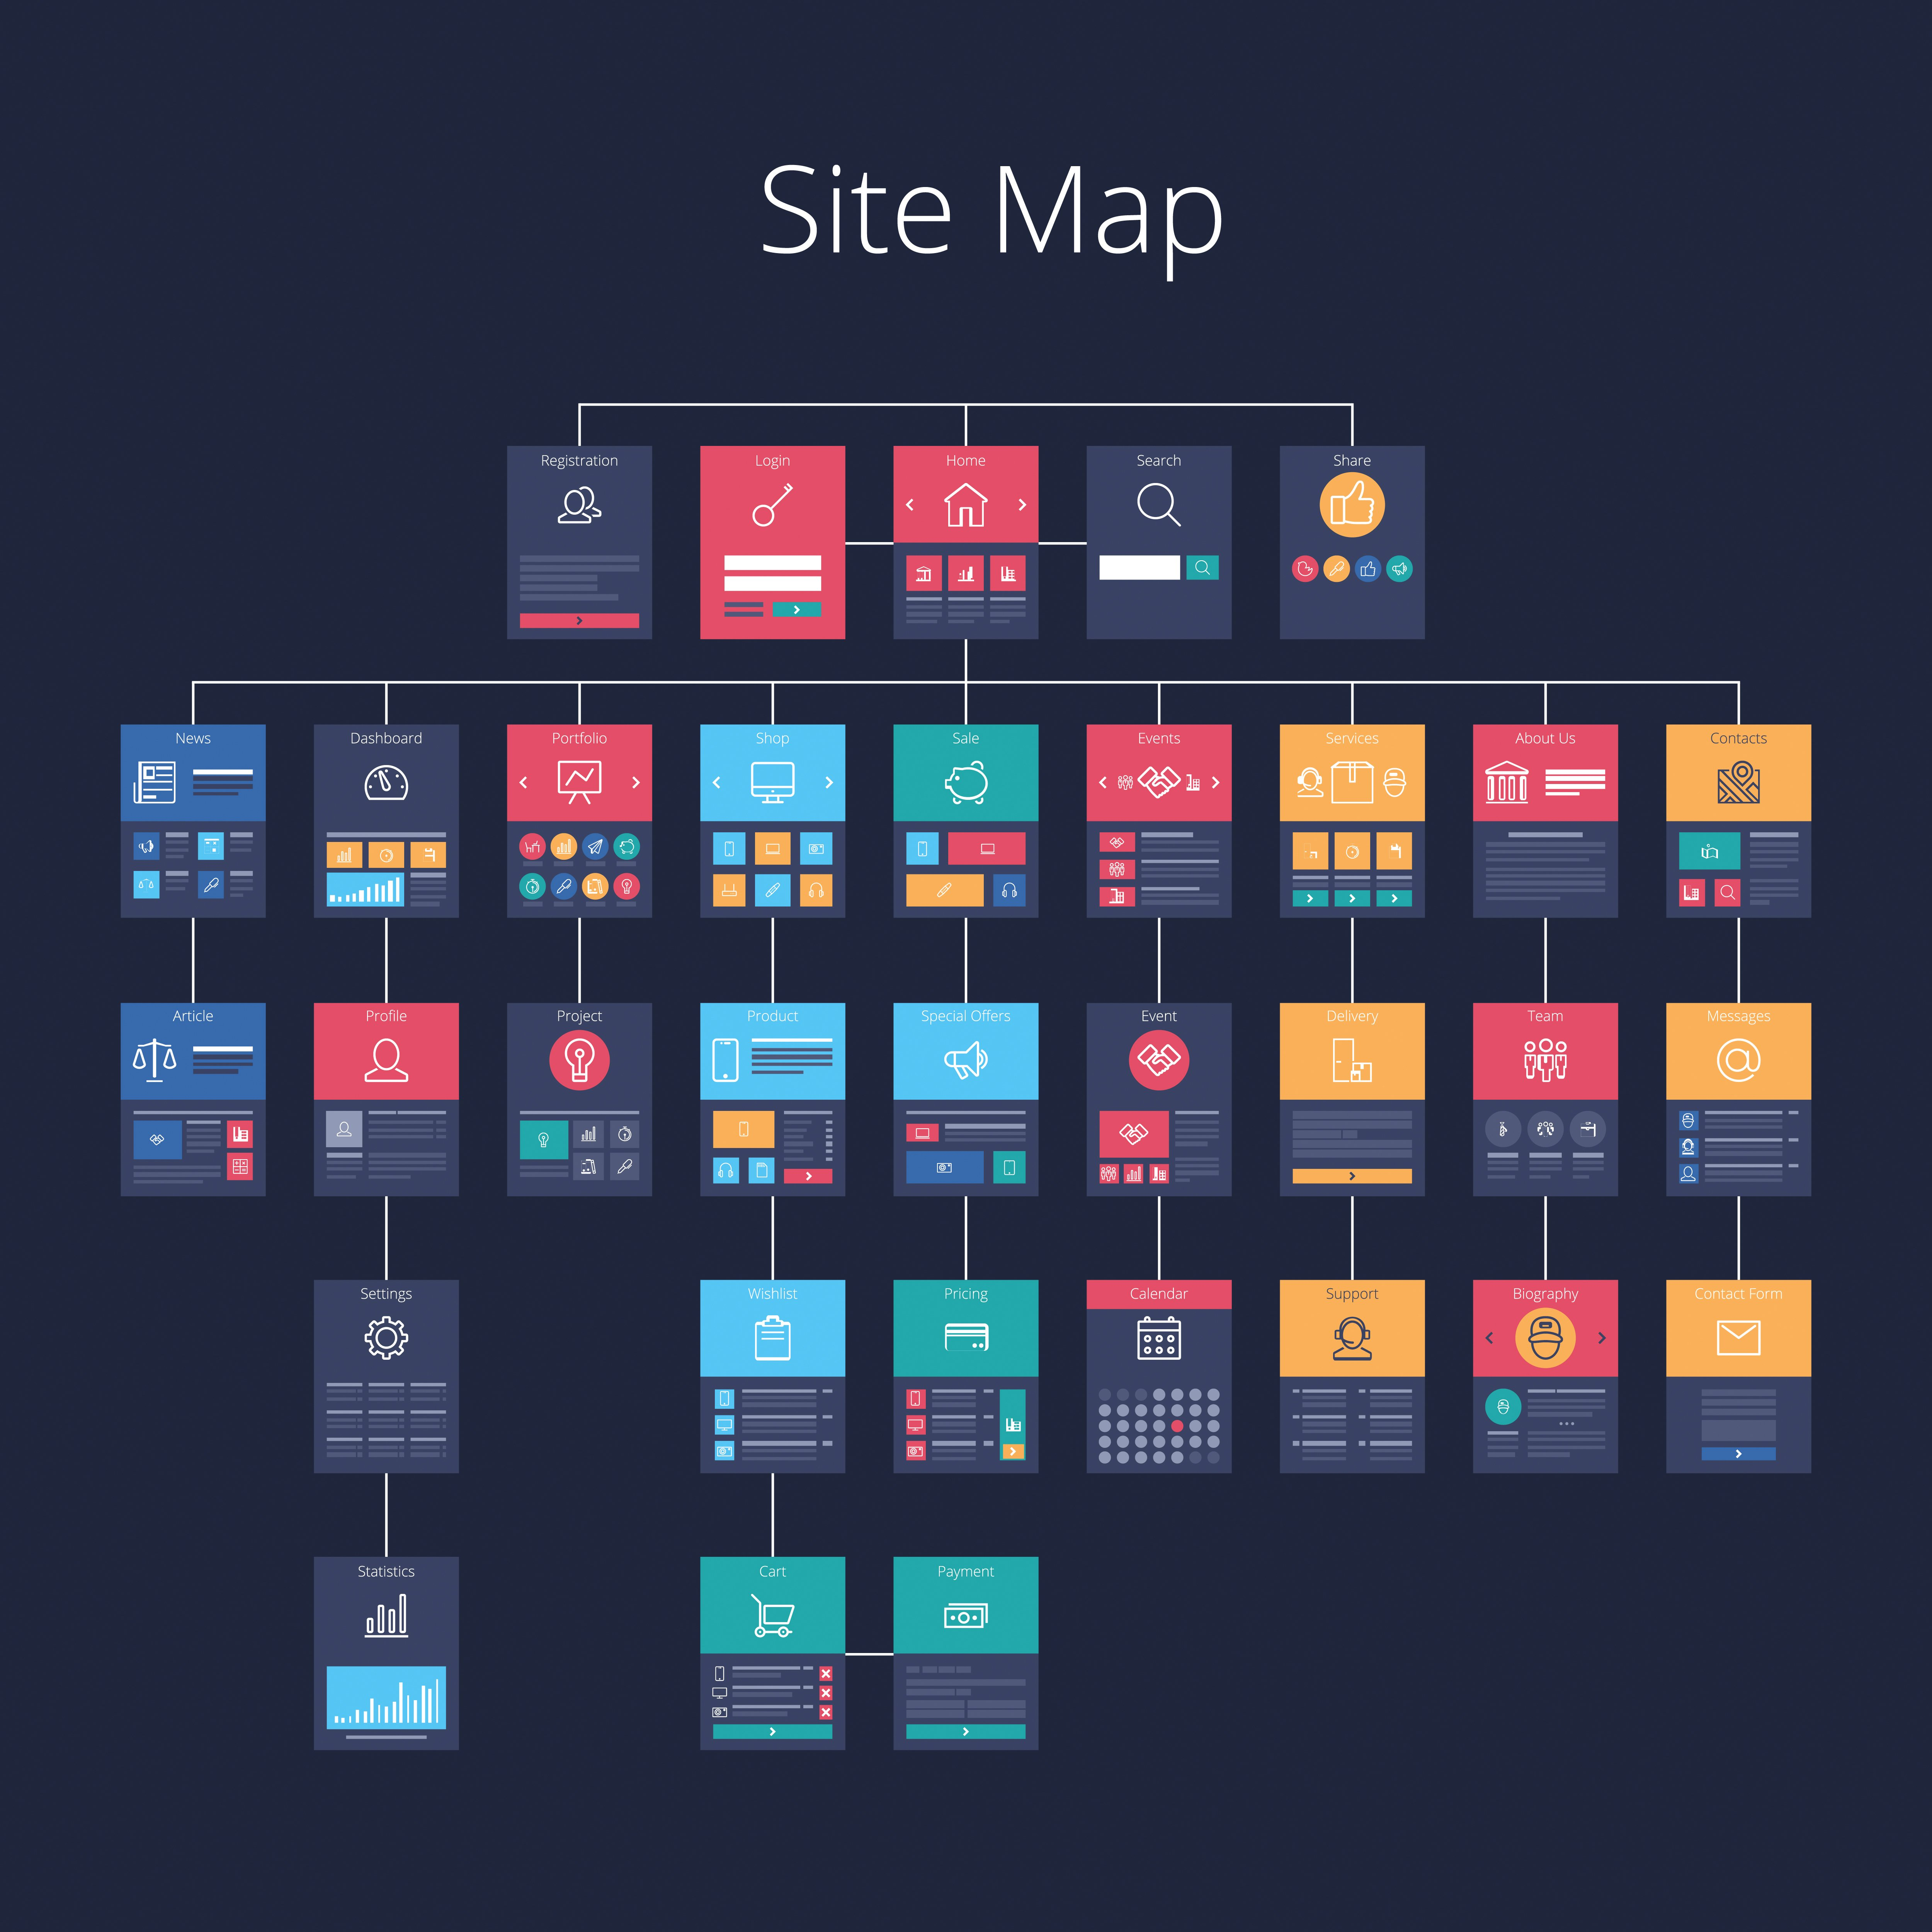 This is the Best Site Structure in 2019 According to Google